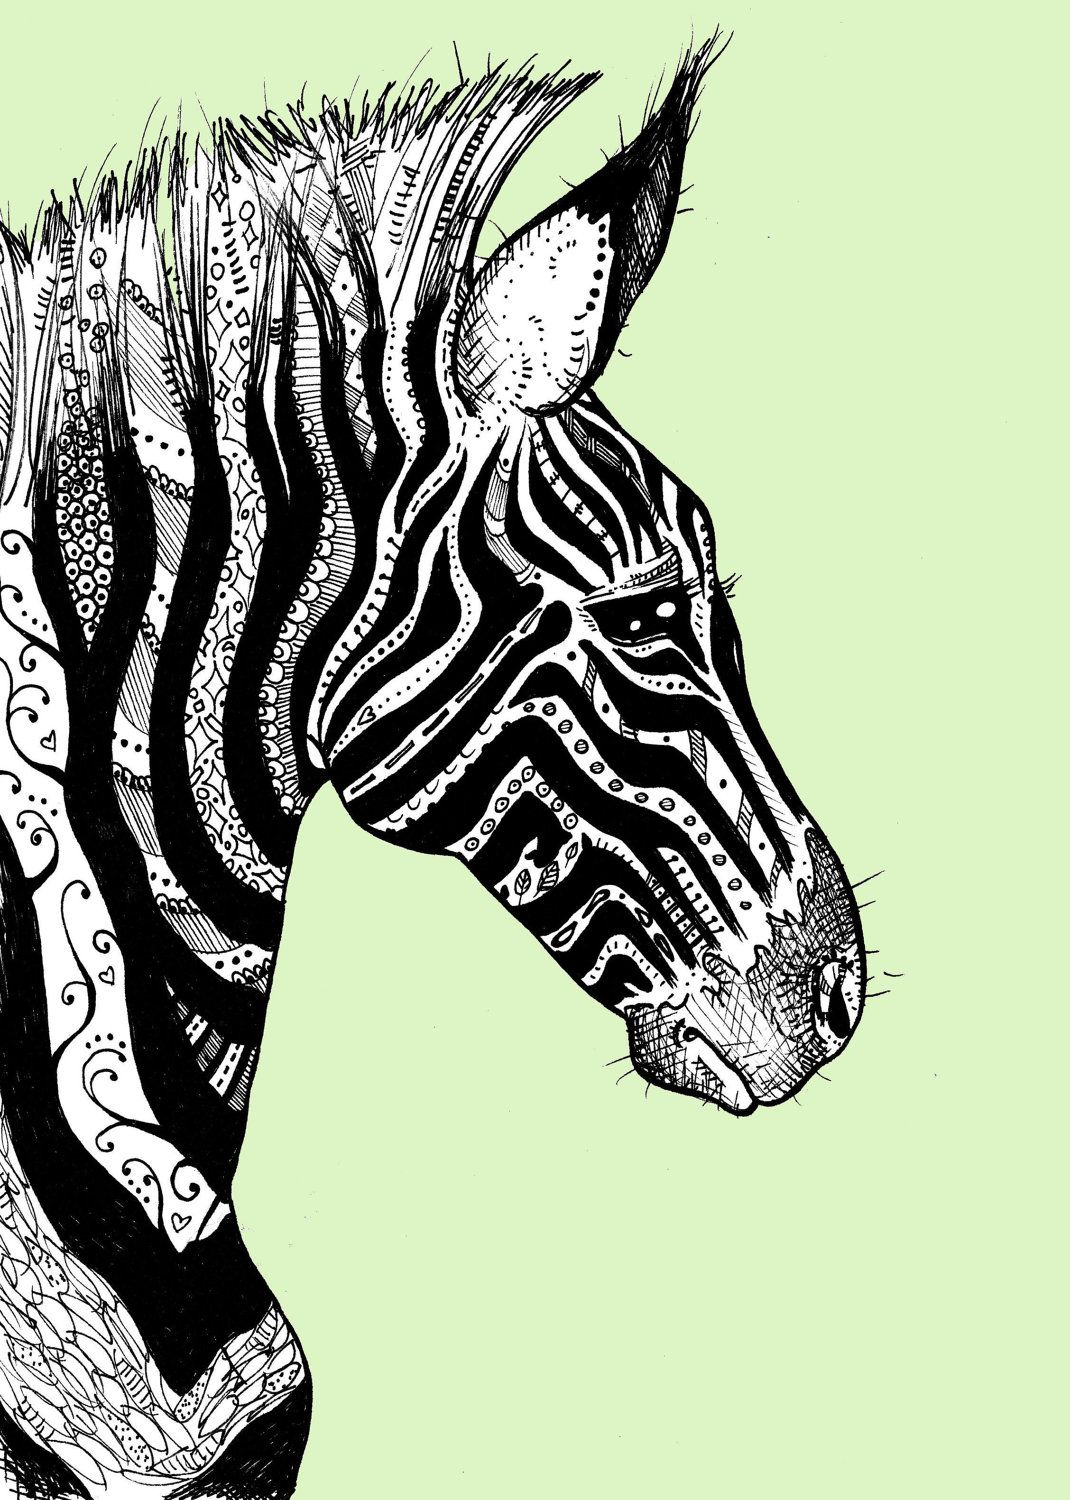 Tattooed Zebra Print 1 on Bright Yellow | Tattoo ideen und Ideen